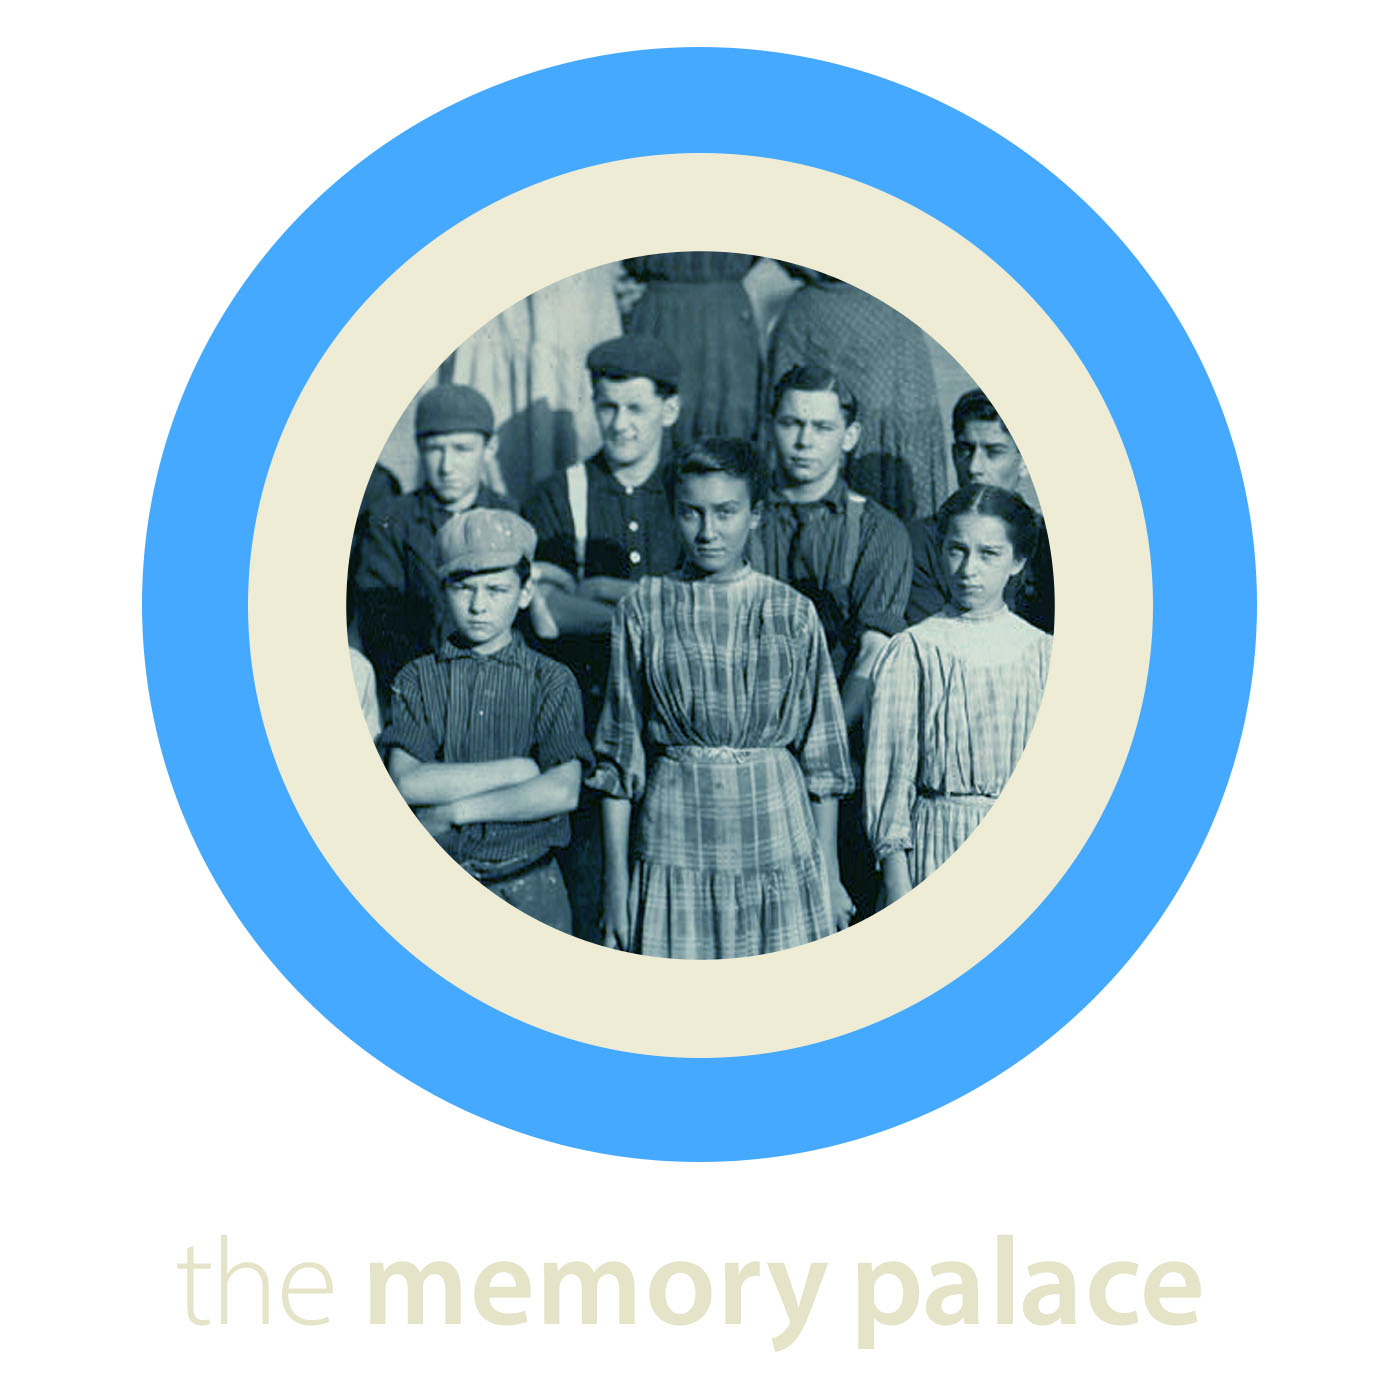 A Conversation About the Memory Palace with Robert Krulwich